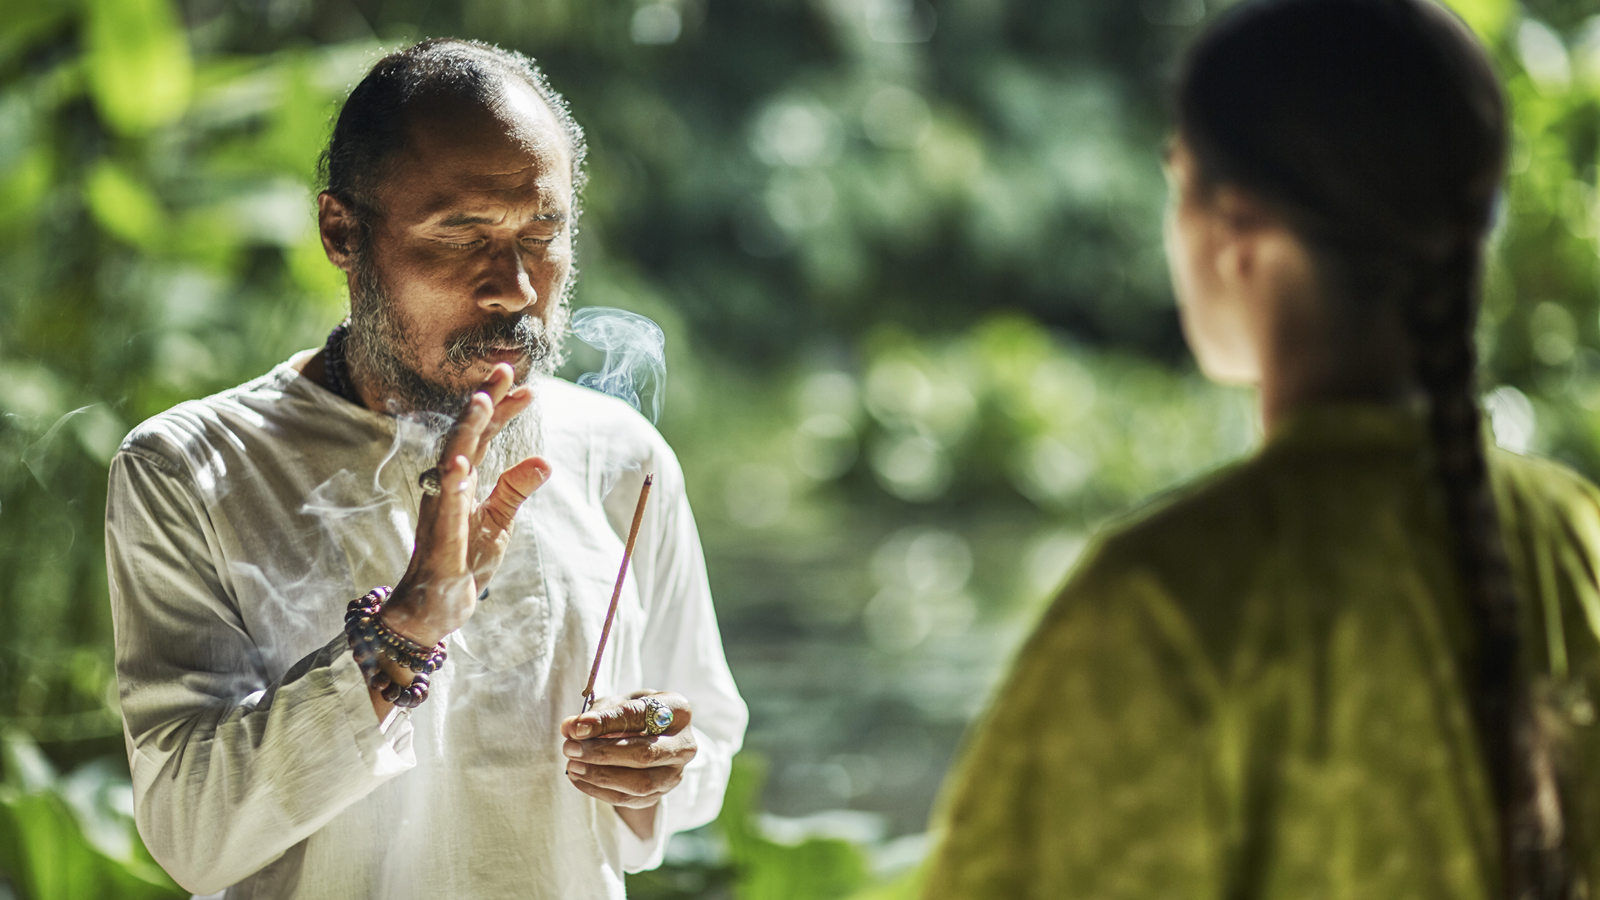 Enjoy Tri Hita Karana, a One-Day Program Based on the Balinese Hindu Philosophy of Life at Four Seasons Resort Bali at Sayan